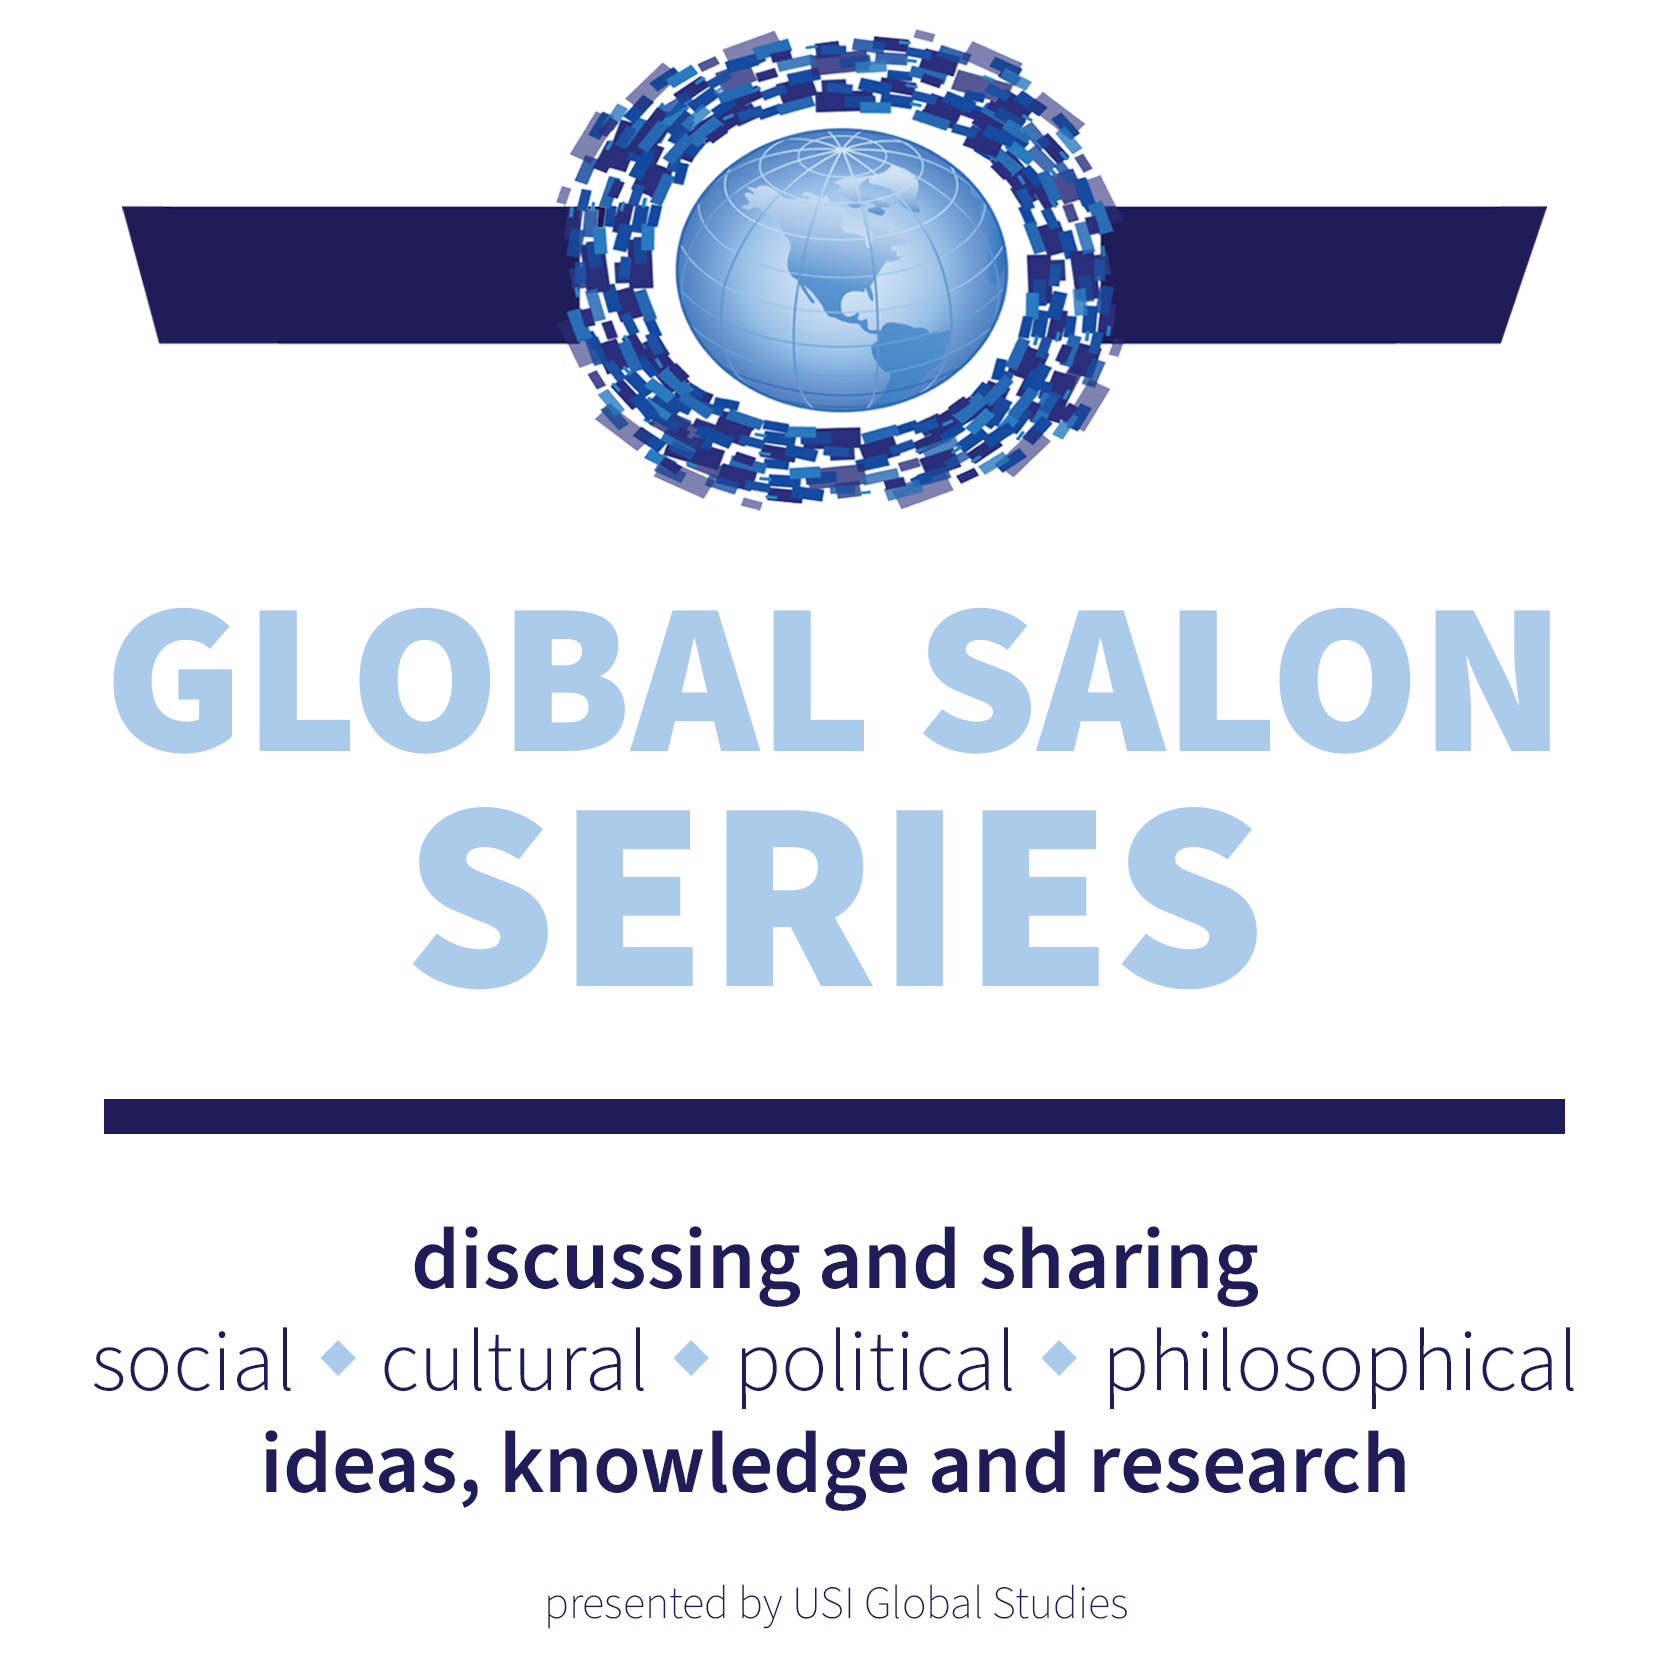 Global Salon Series